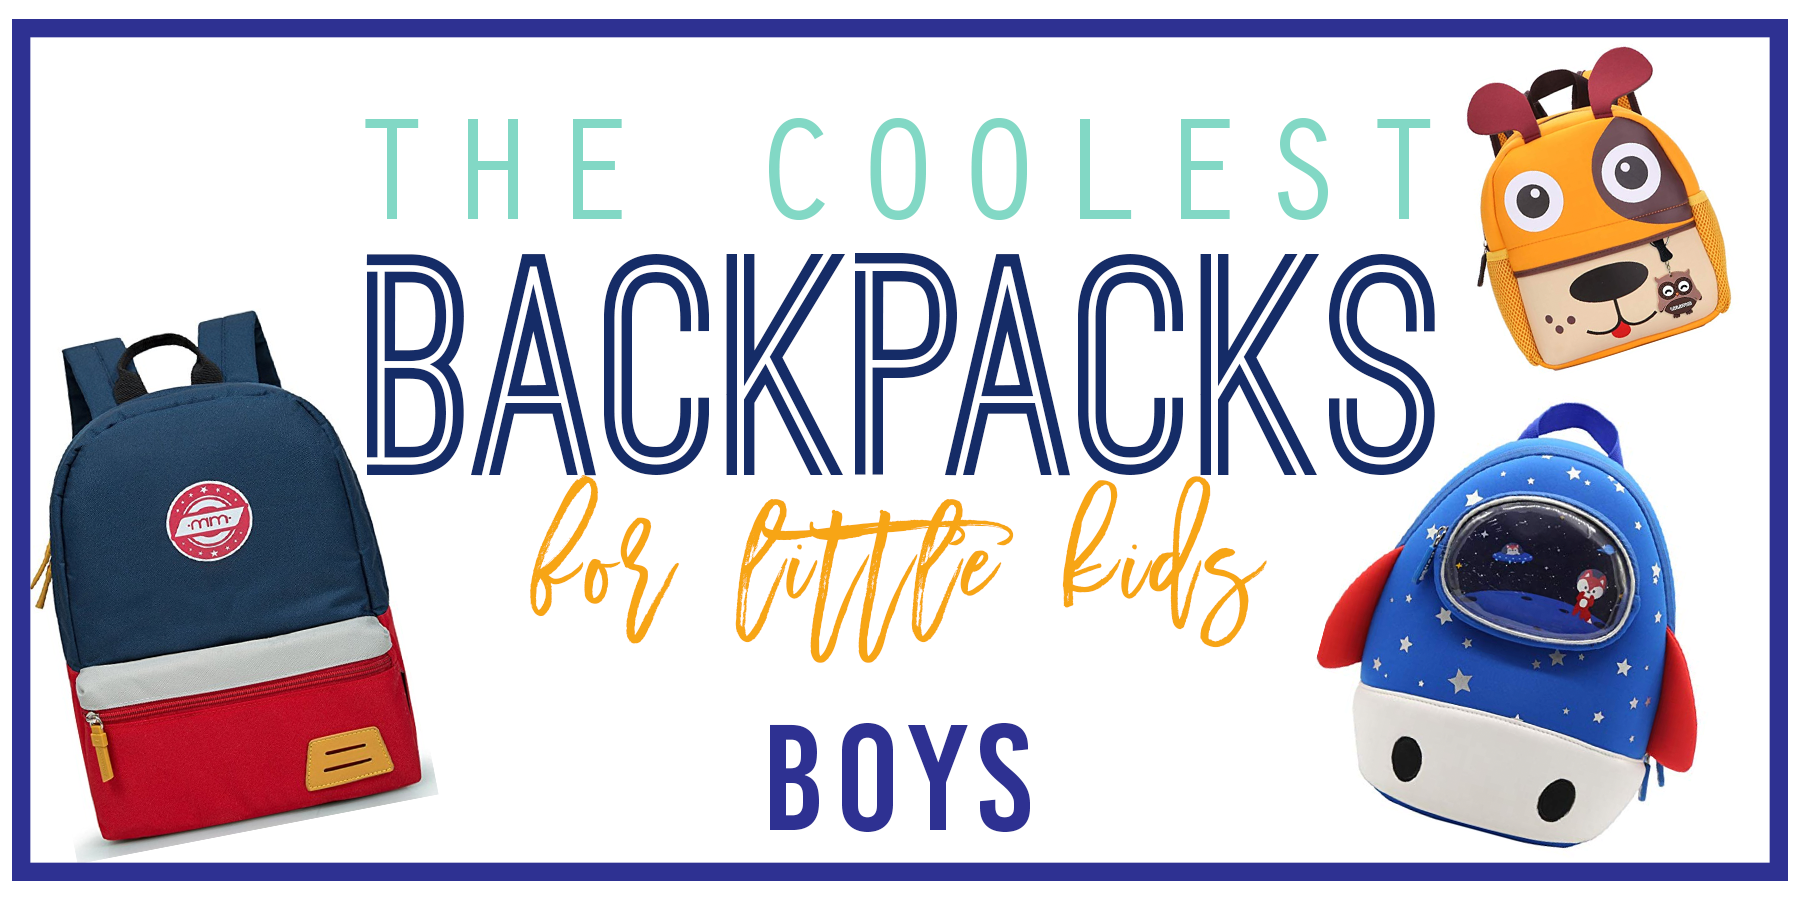 THE COOLEST Backpacks For Boys!